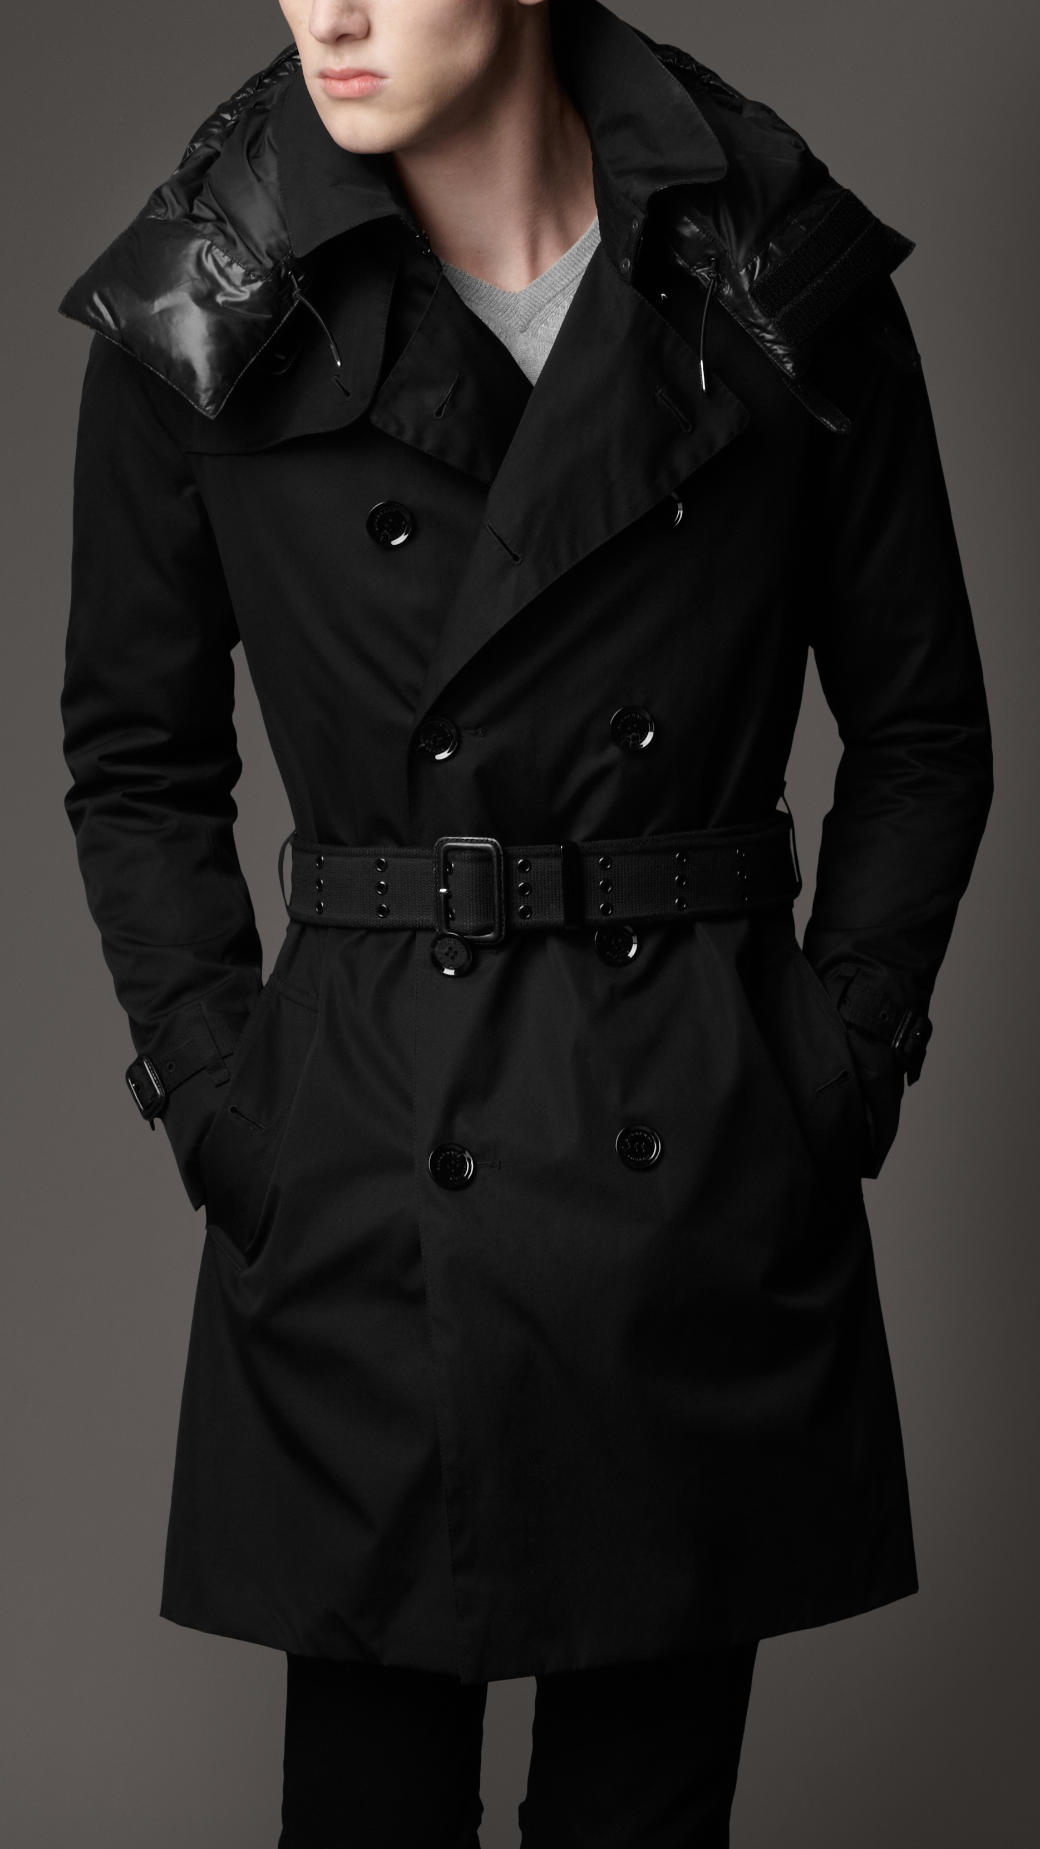 black trench coat with hood - photo #21